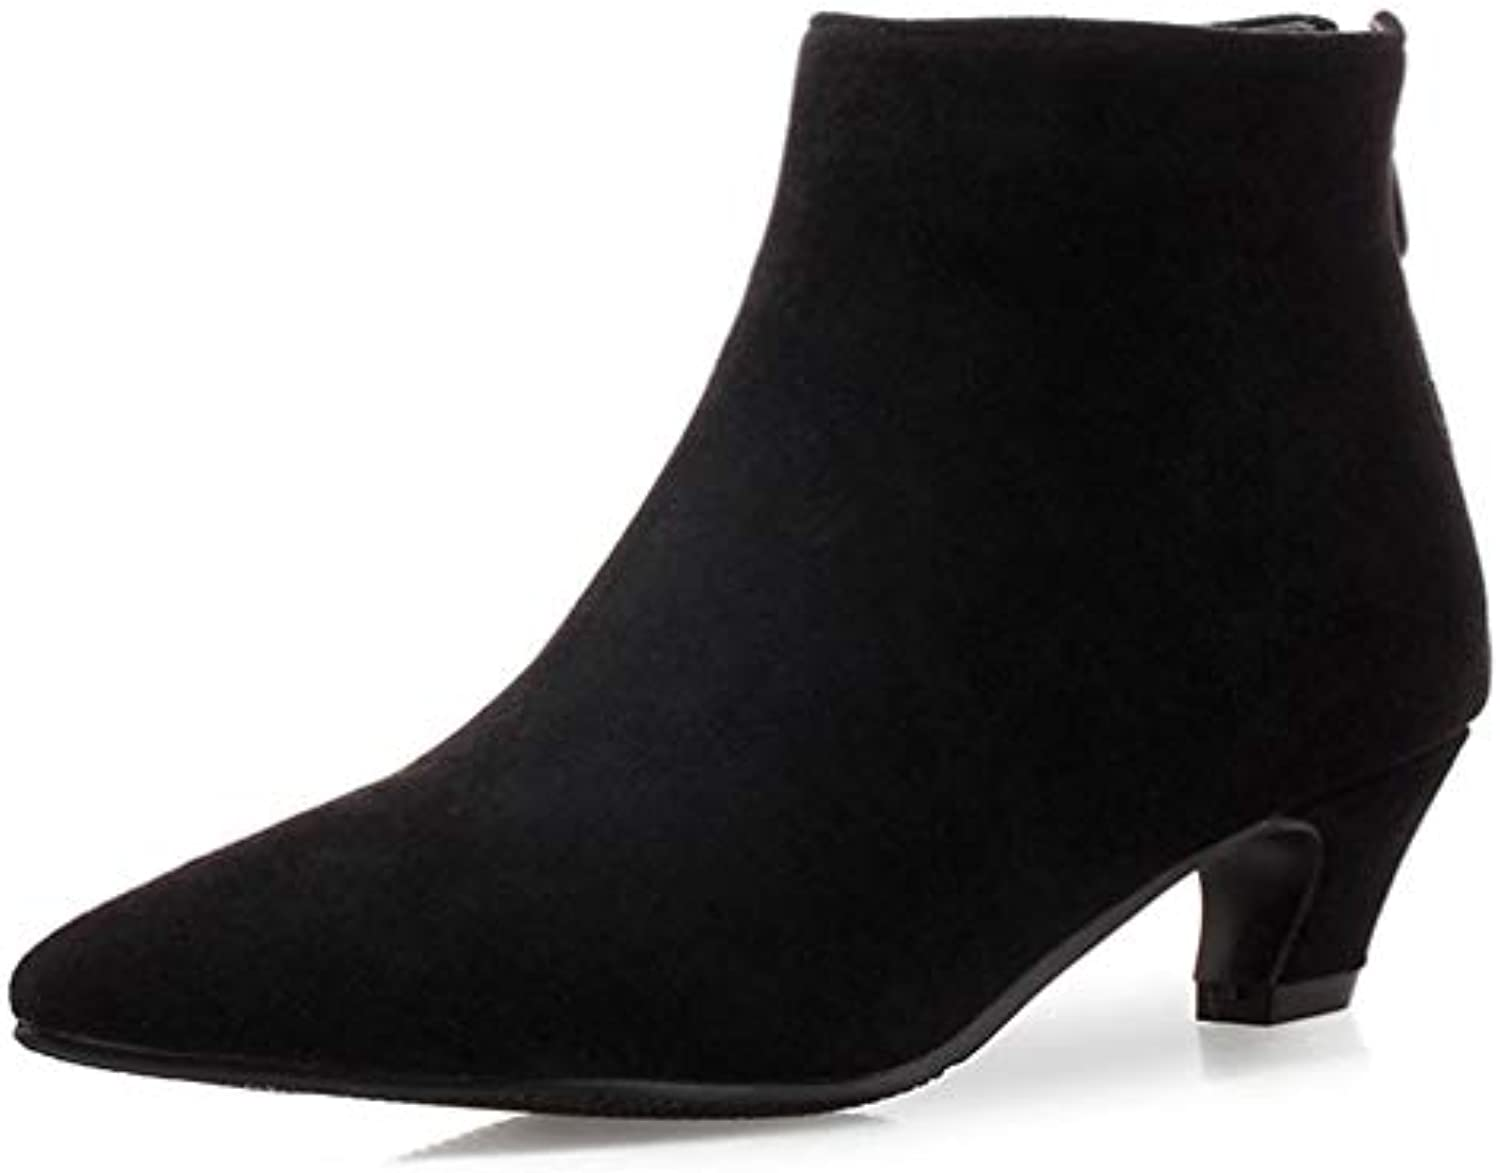 GIY Women's Pointed Toe Dressy Suede Ankle Boots Stilettos Low Heel Zipper Booties Retro Martin Short Boot